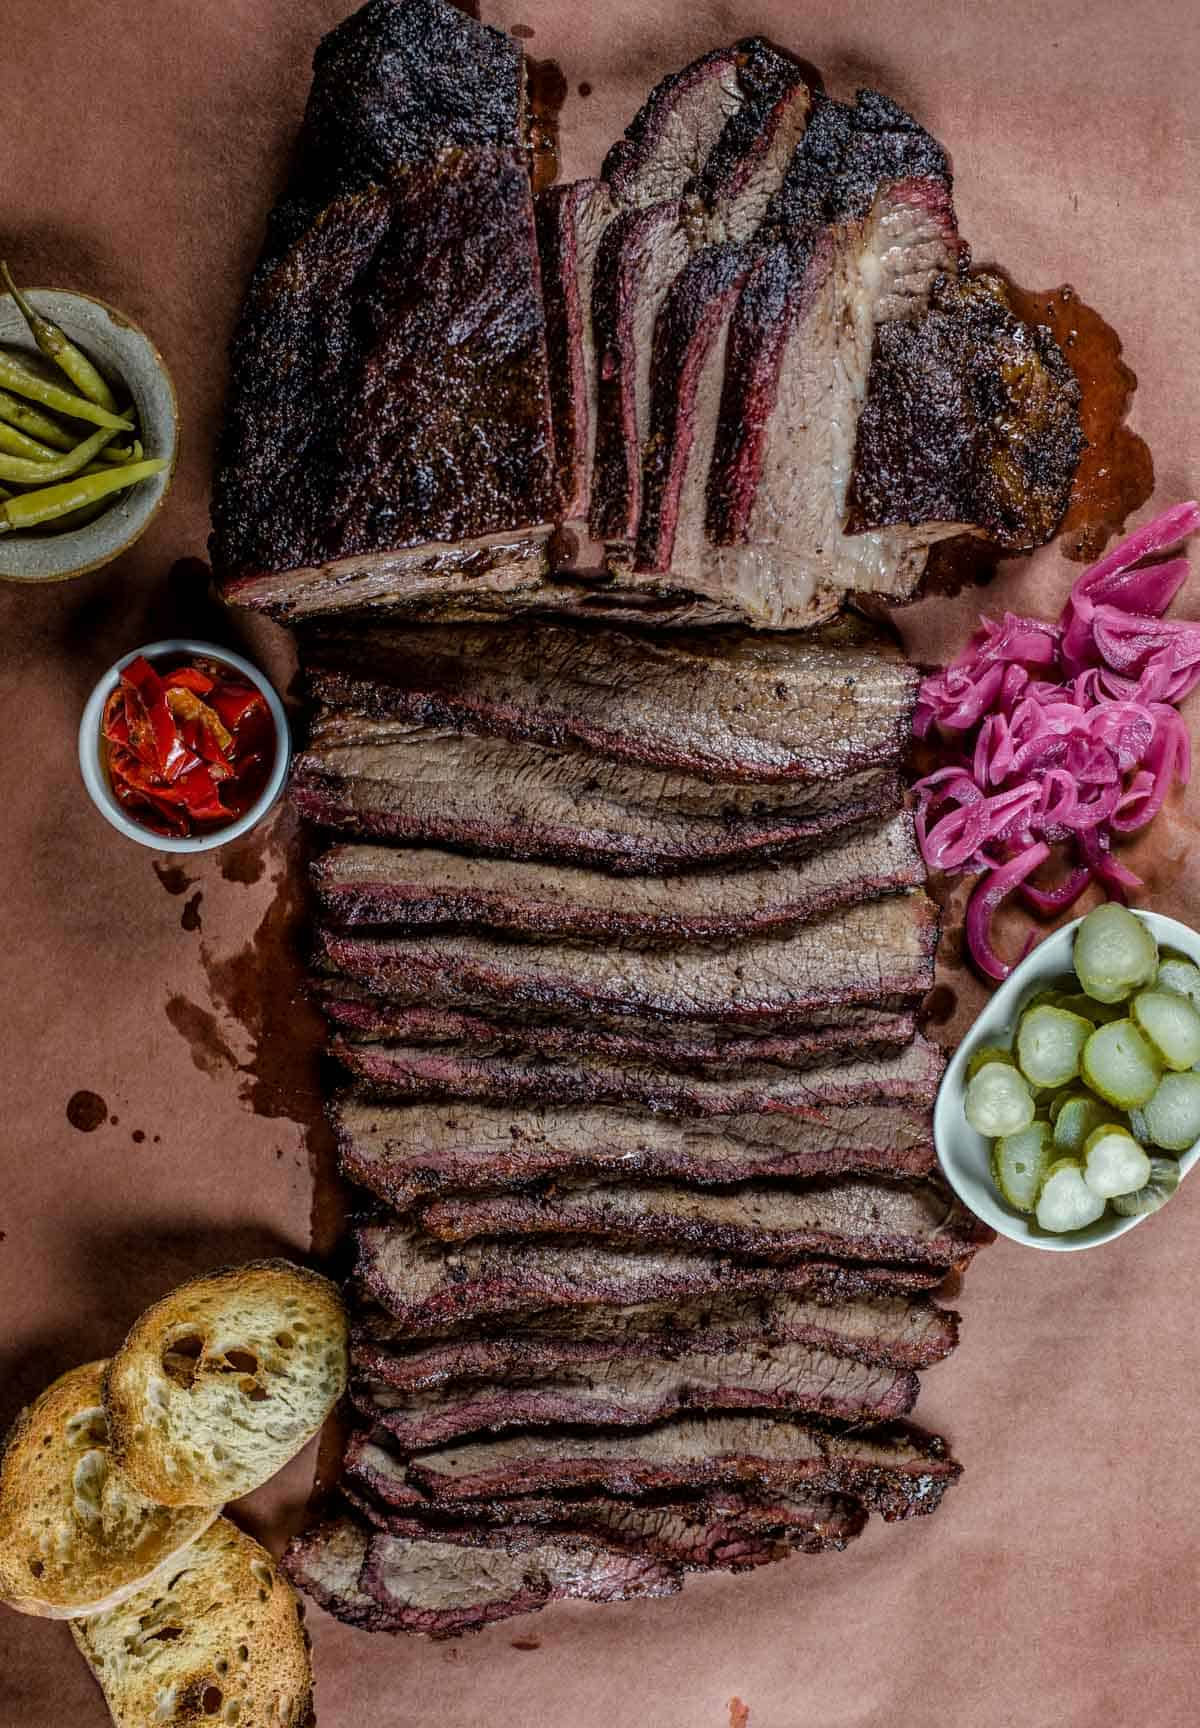 Smoked brisket sliced on pink butcher paper with garnishes